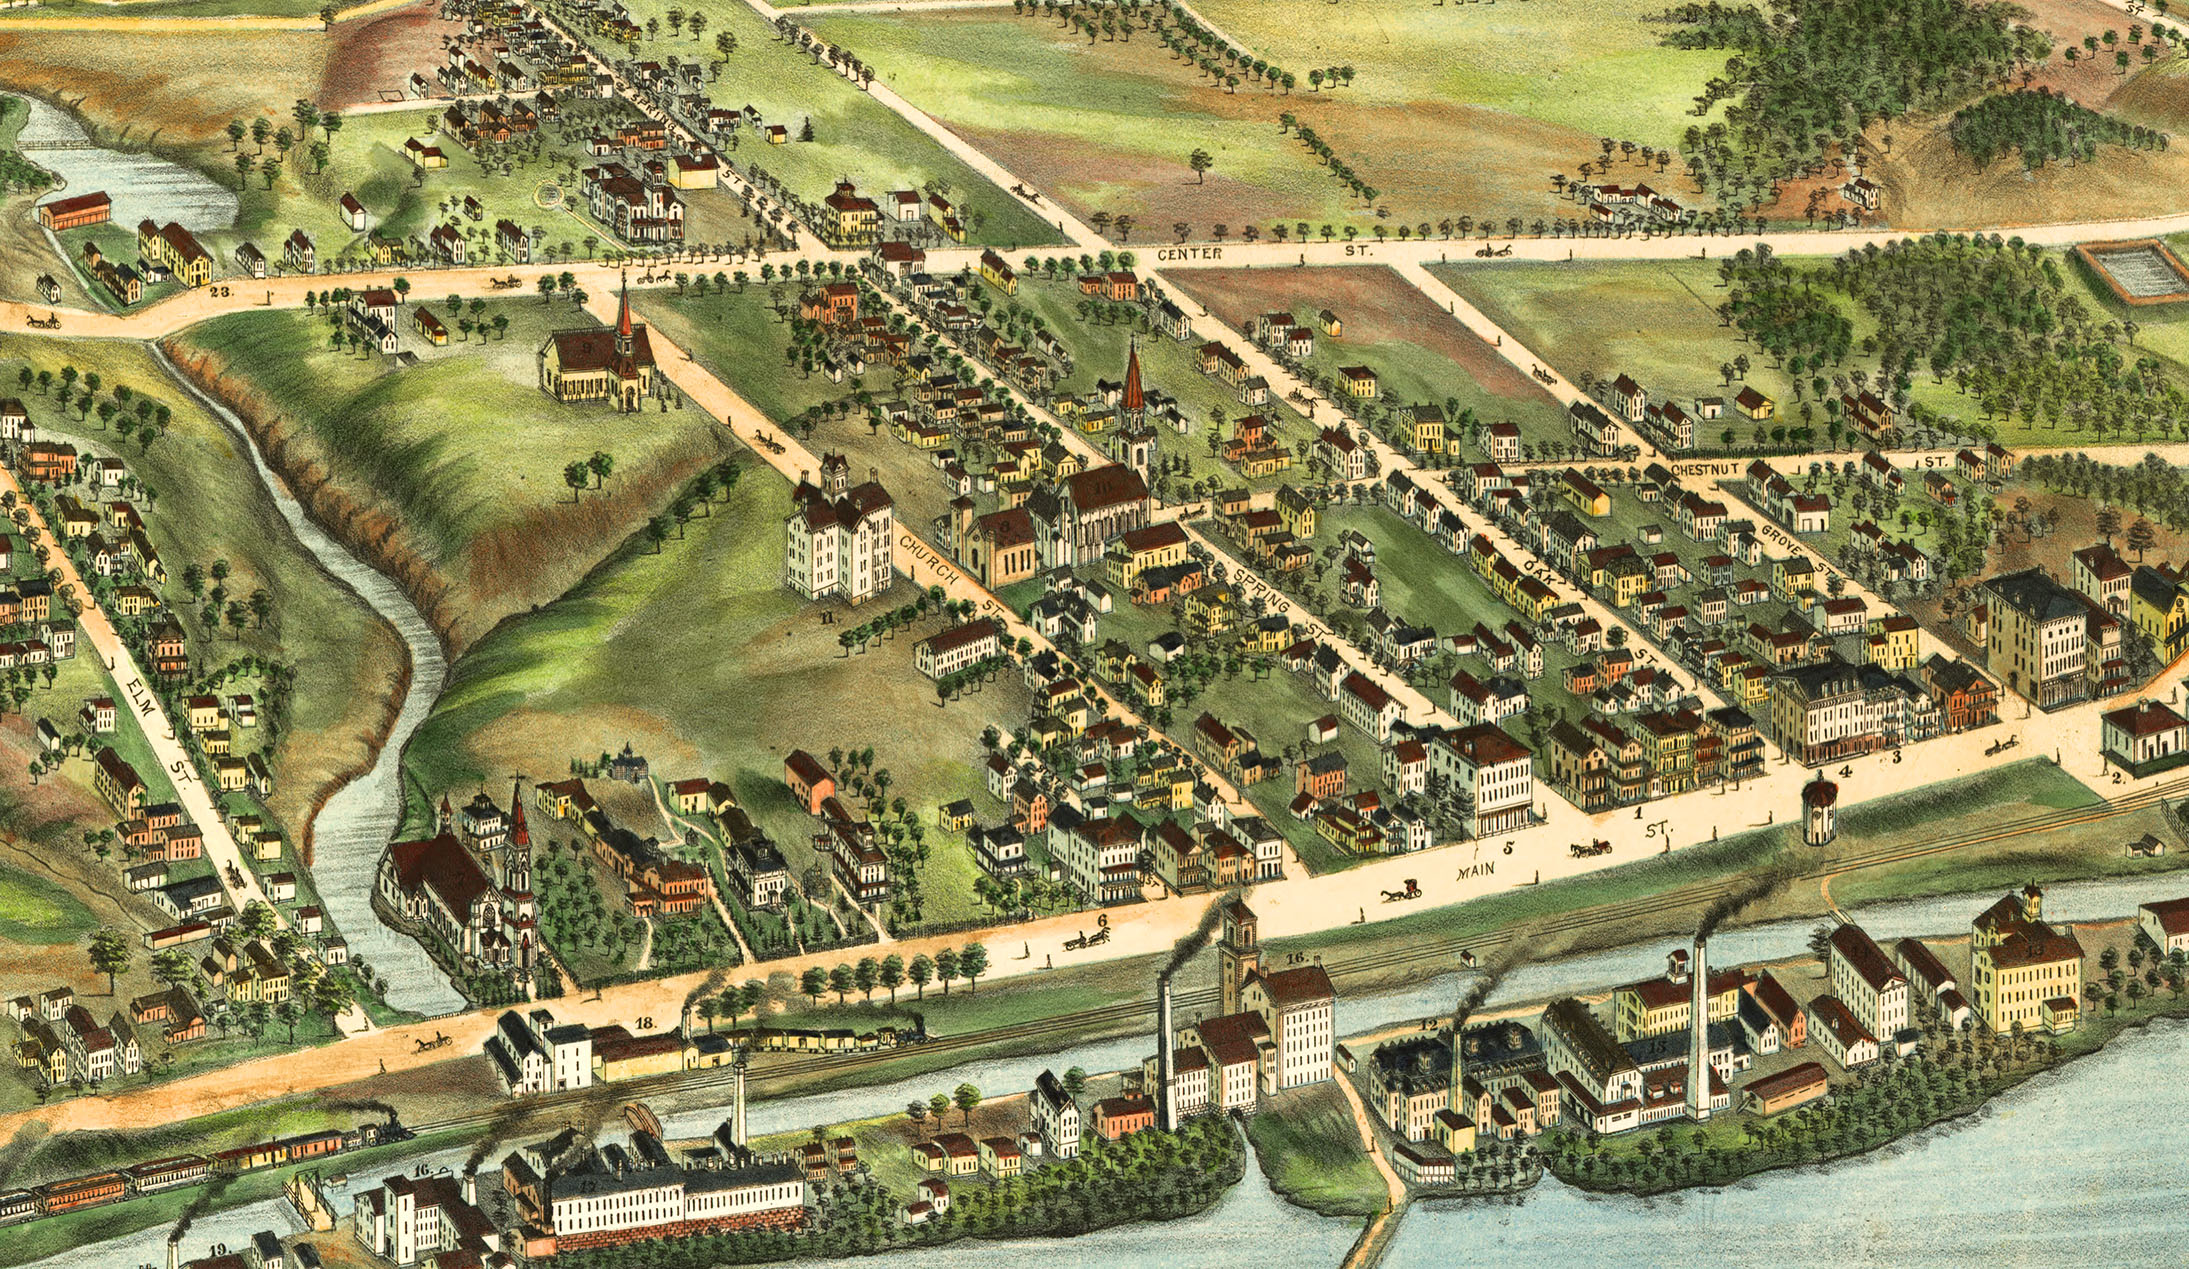 Windsor Locks (CT) United States  city images : Windsor Locks, CT in 1877 Bird's Eye View, Aerial map, Panorama ...